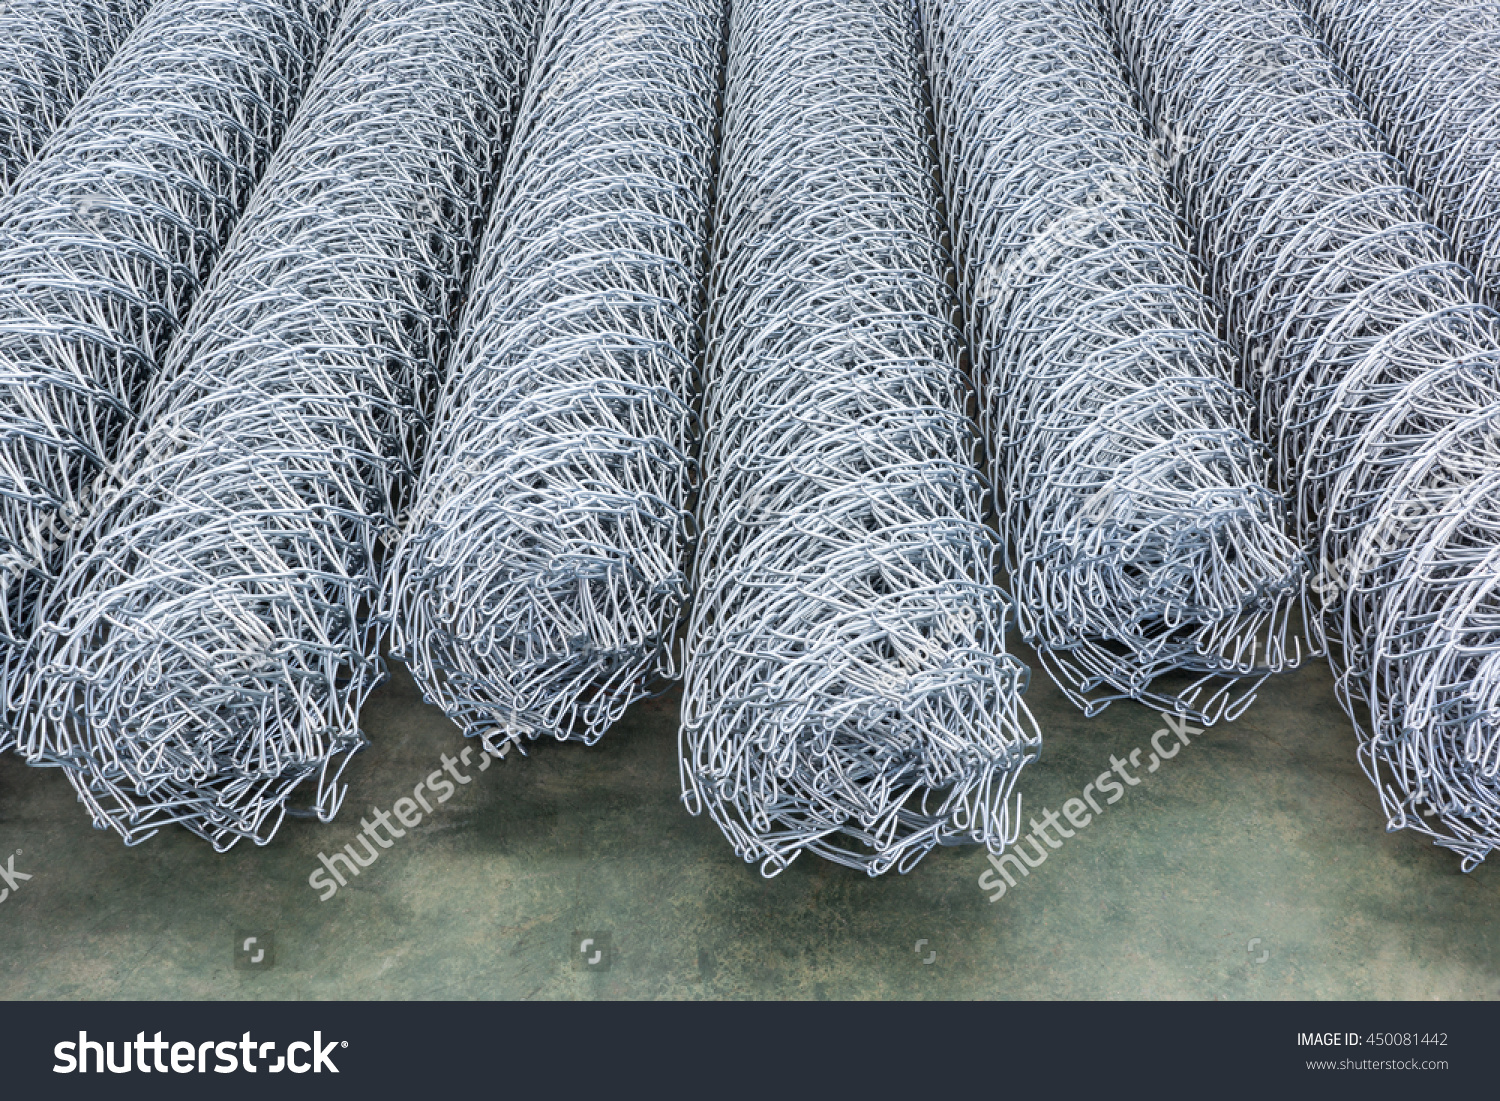 Metal Wire Mesh Rolls Stock Photo (Edit Now) 450081442 - Shutterstock